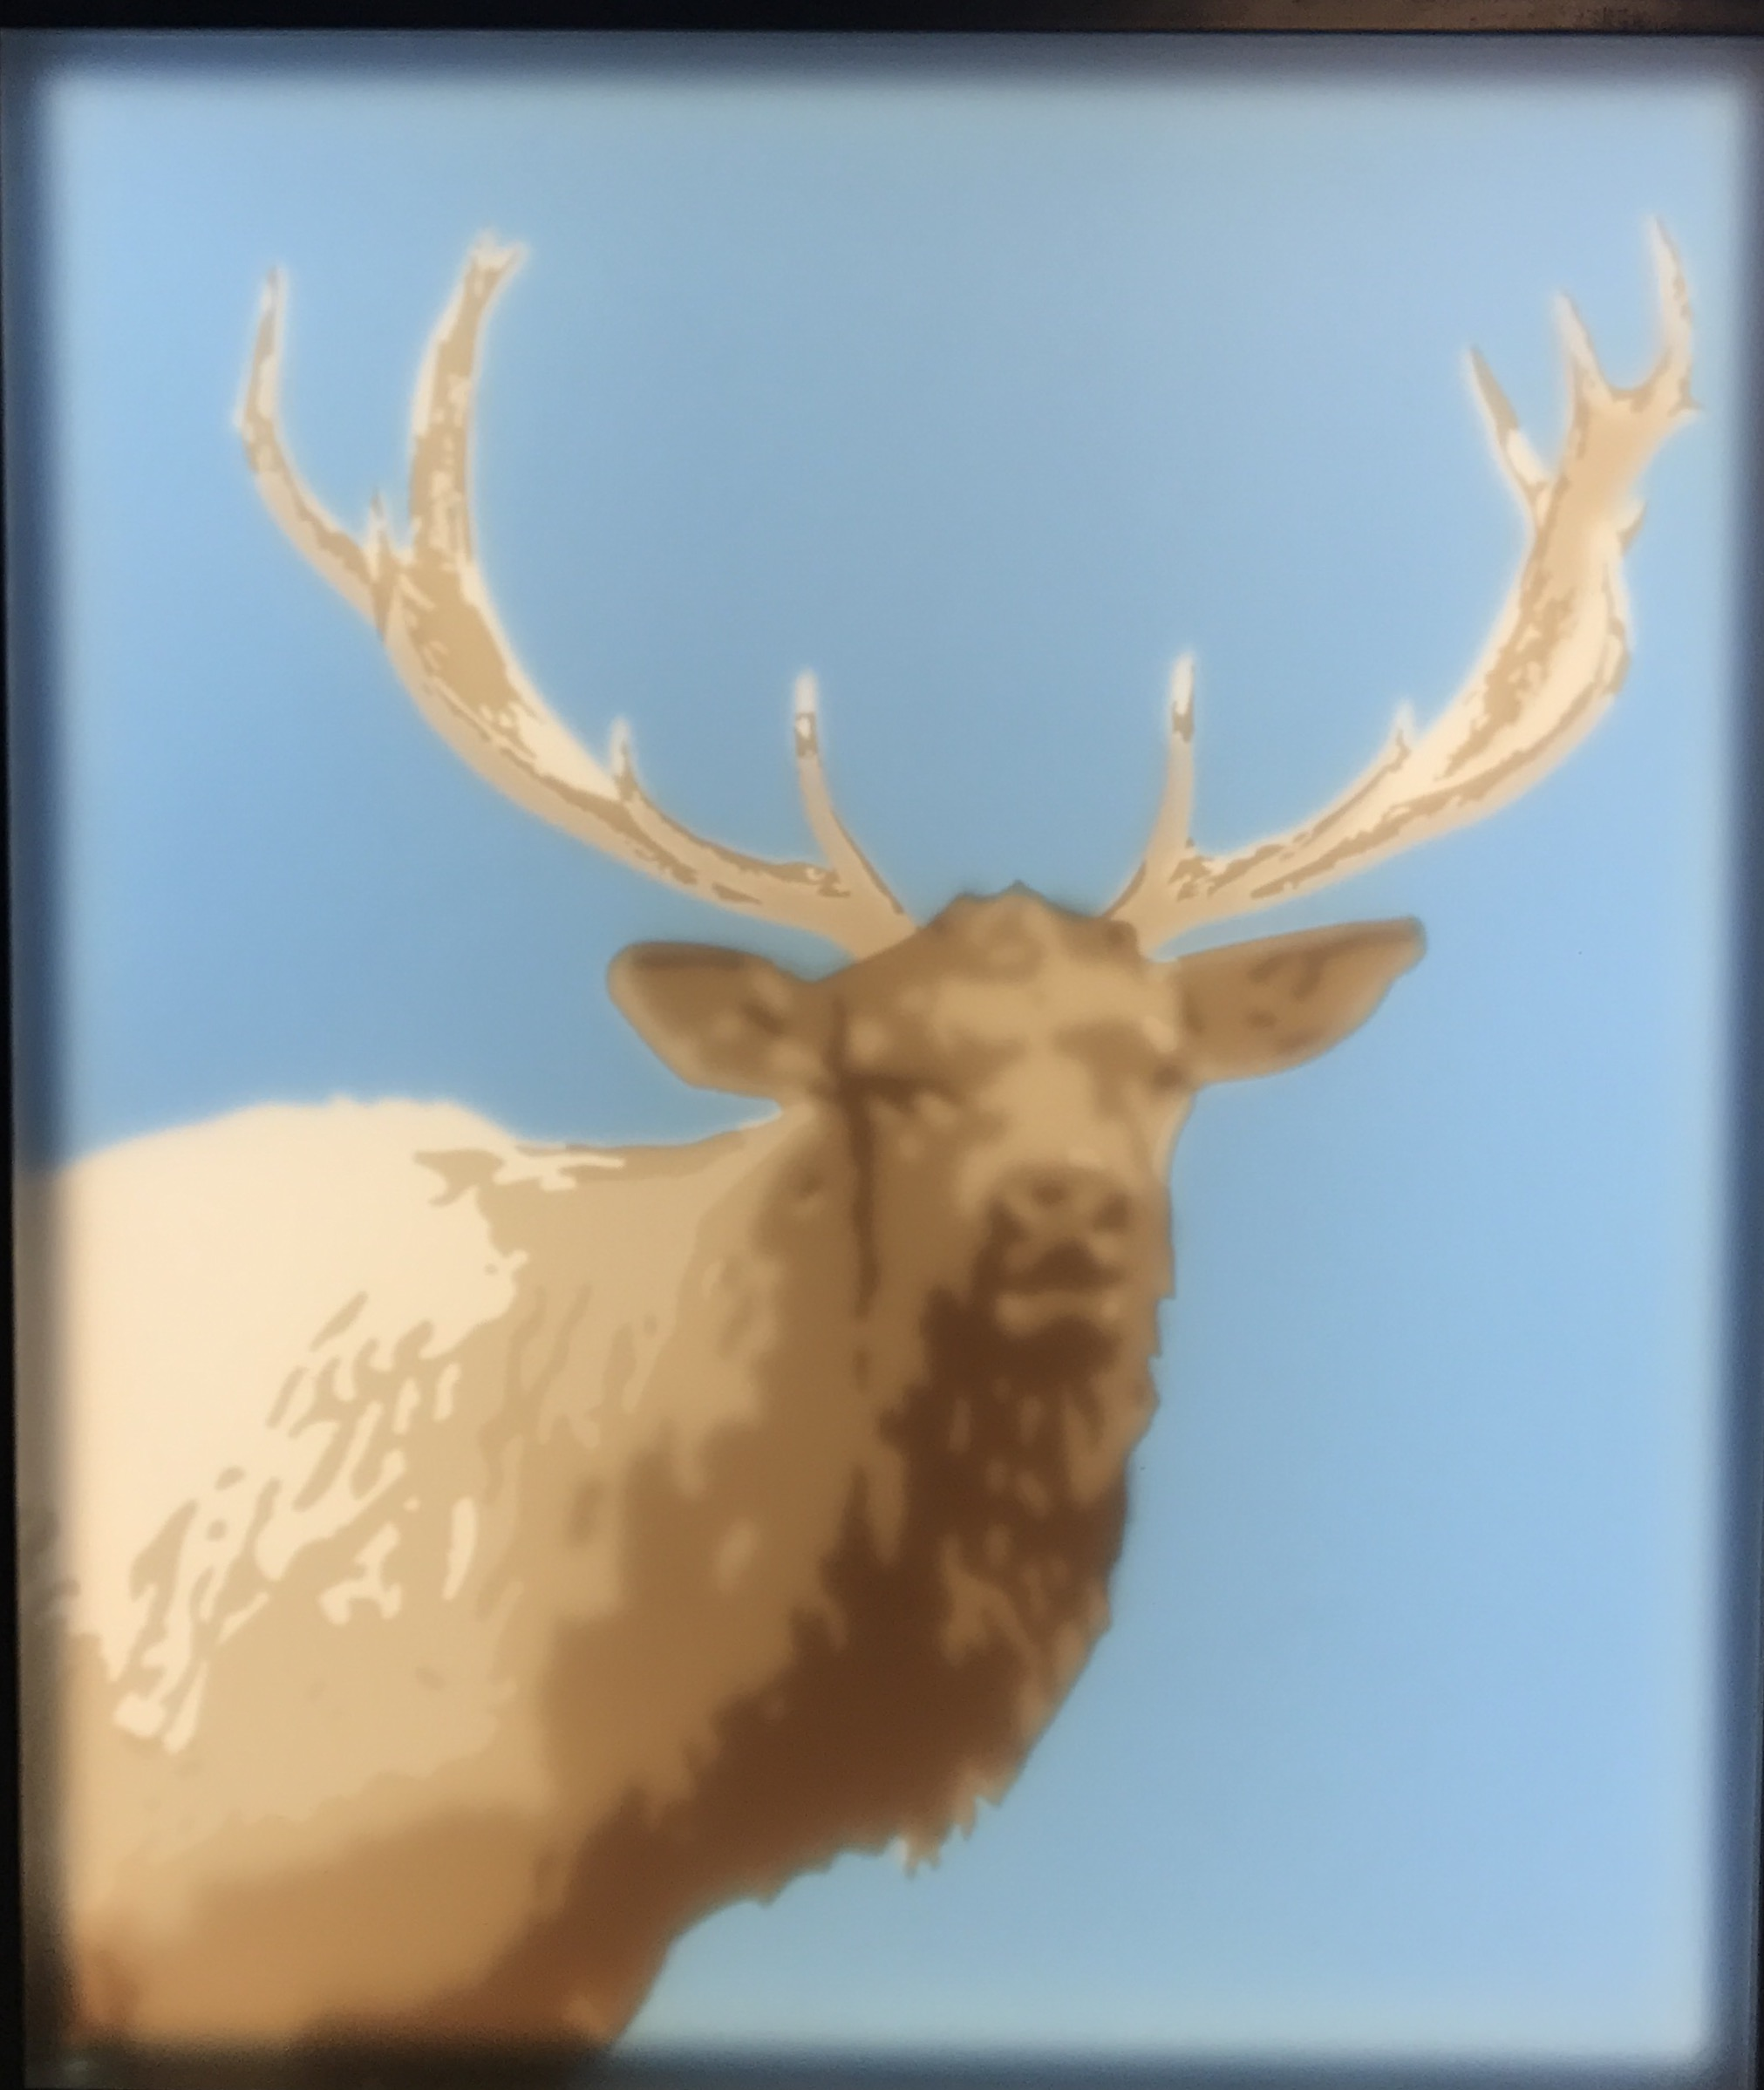 Printed plexiglass artwork of an elk in blue and gold.